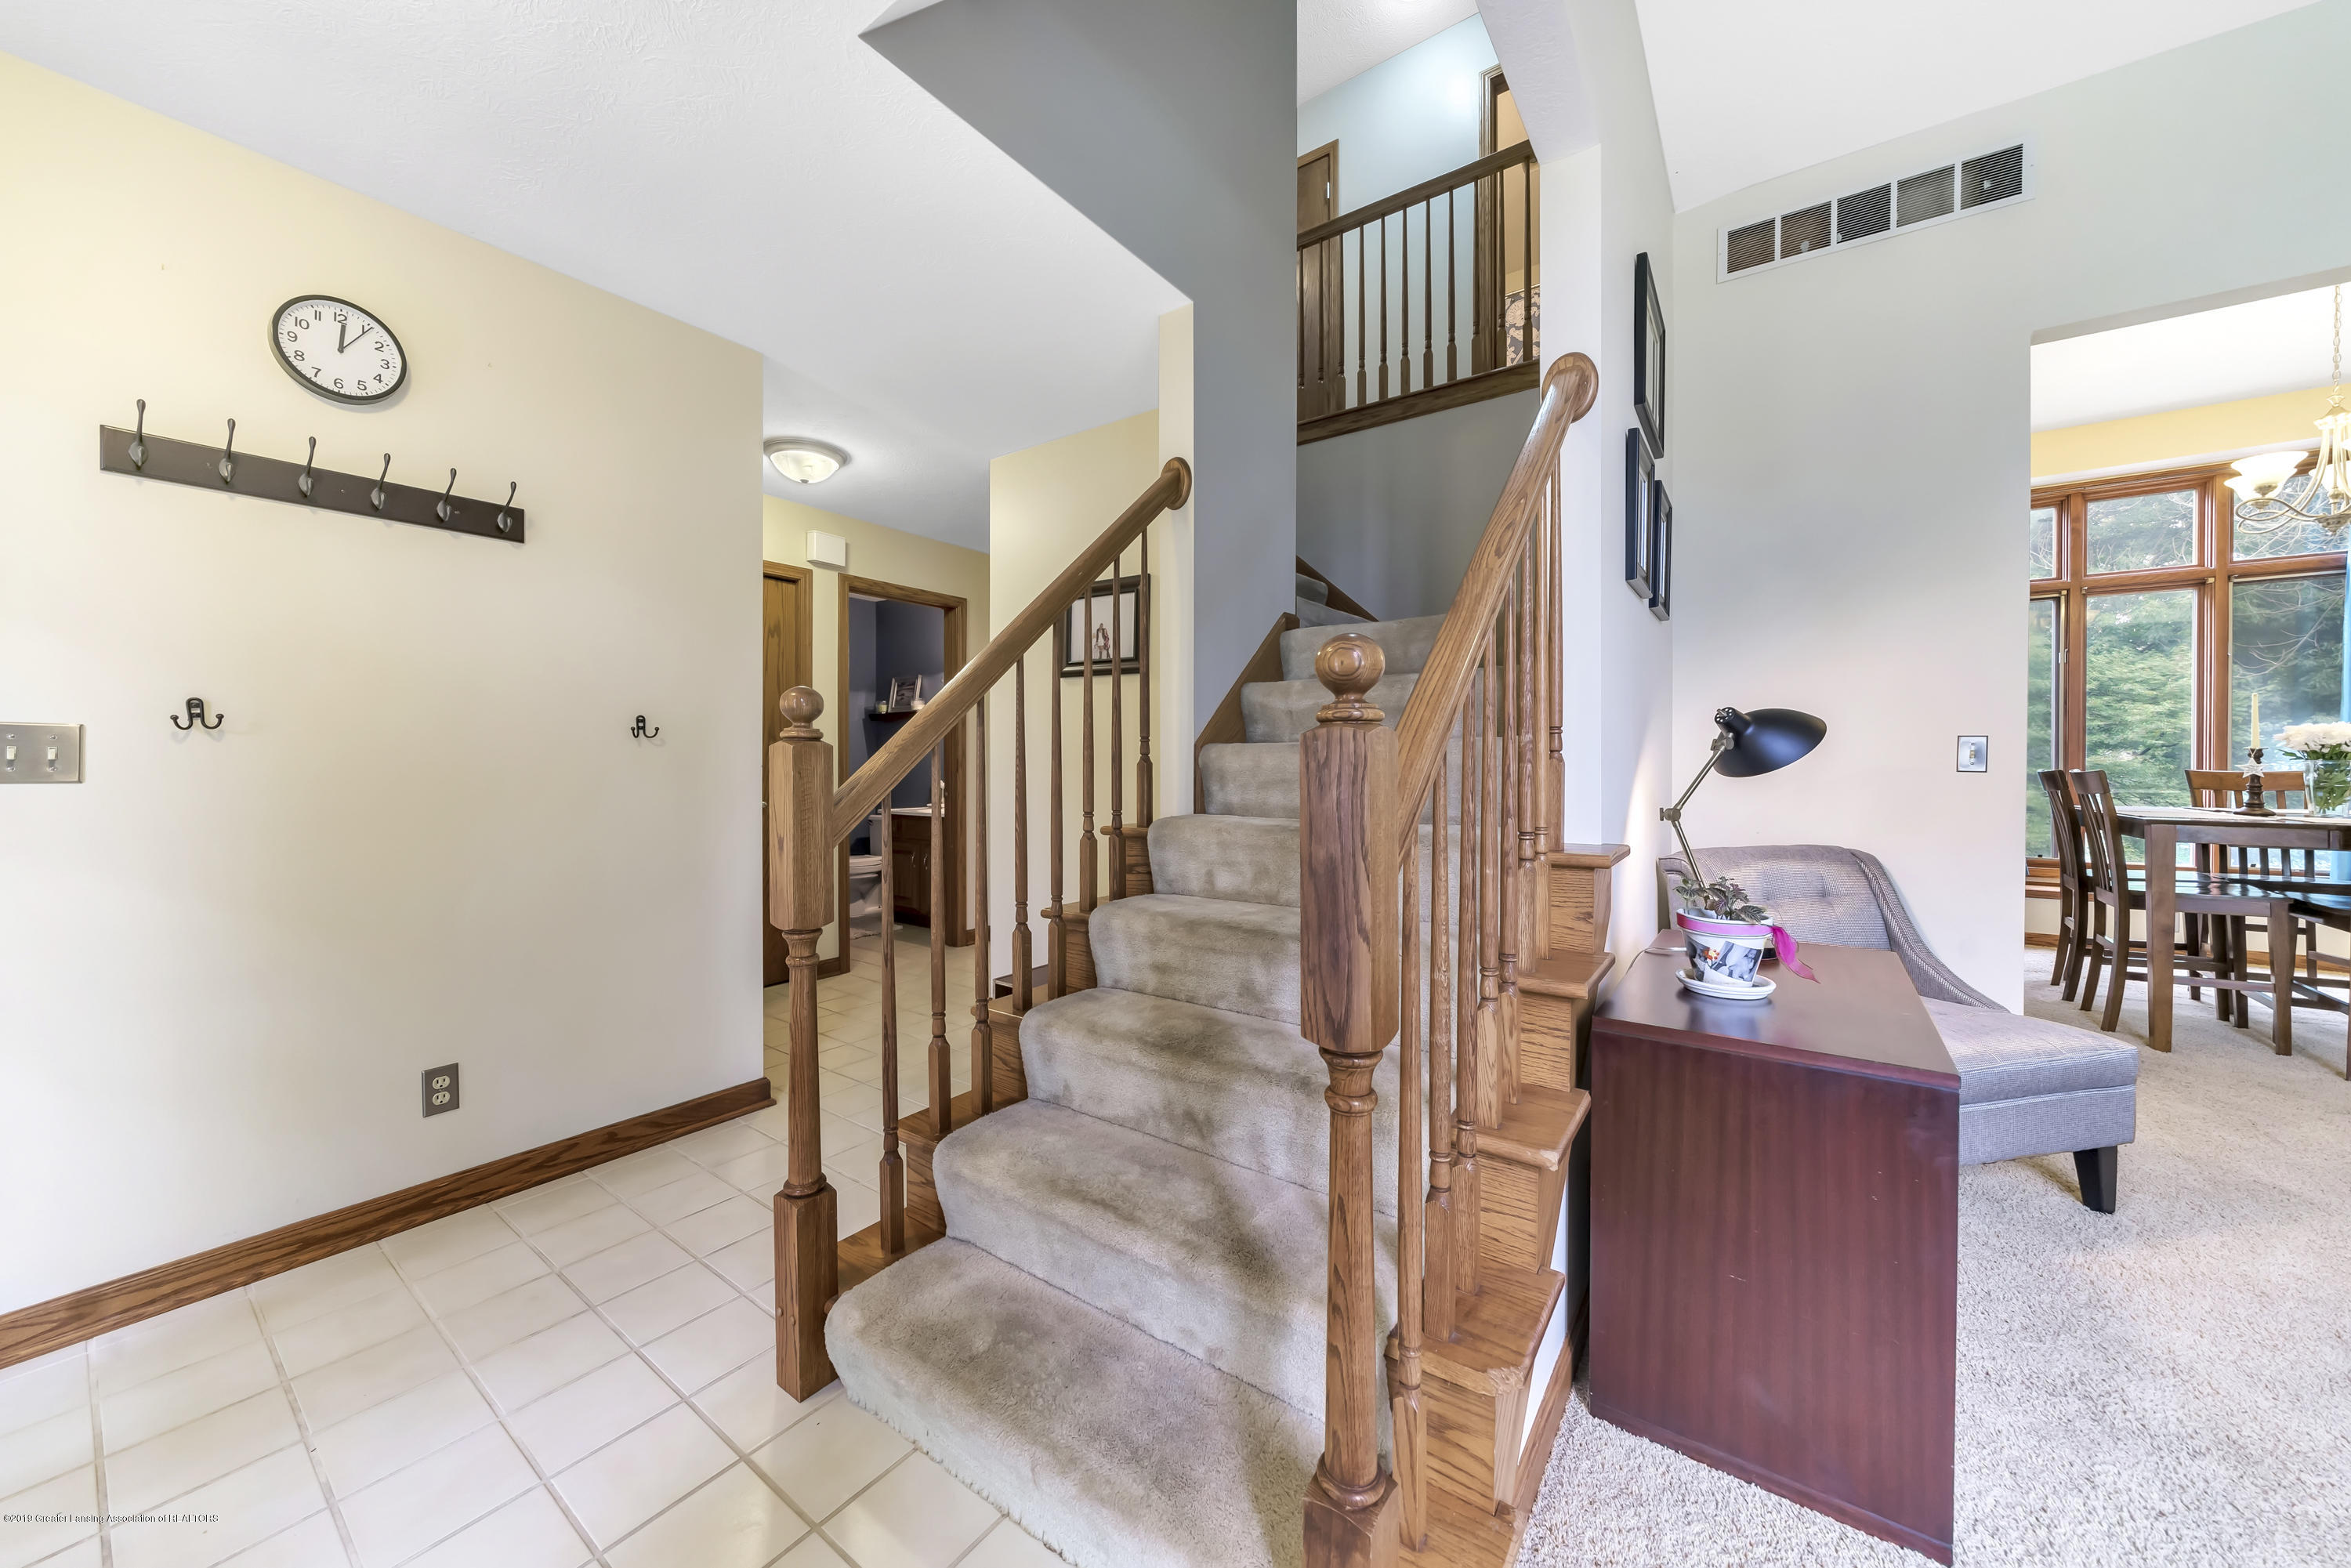 2282 Moorwood Dr - 2282-moorwood-Holt-mi-48842-windowstill- - 4